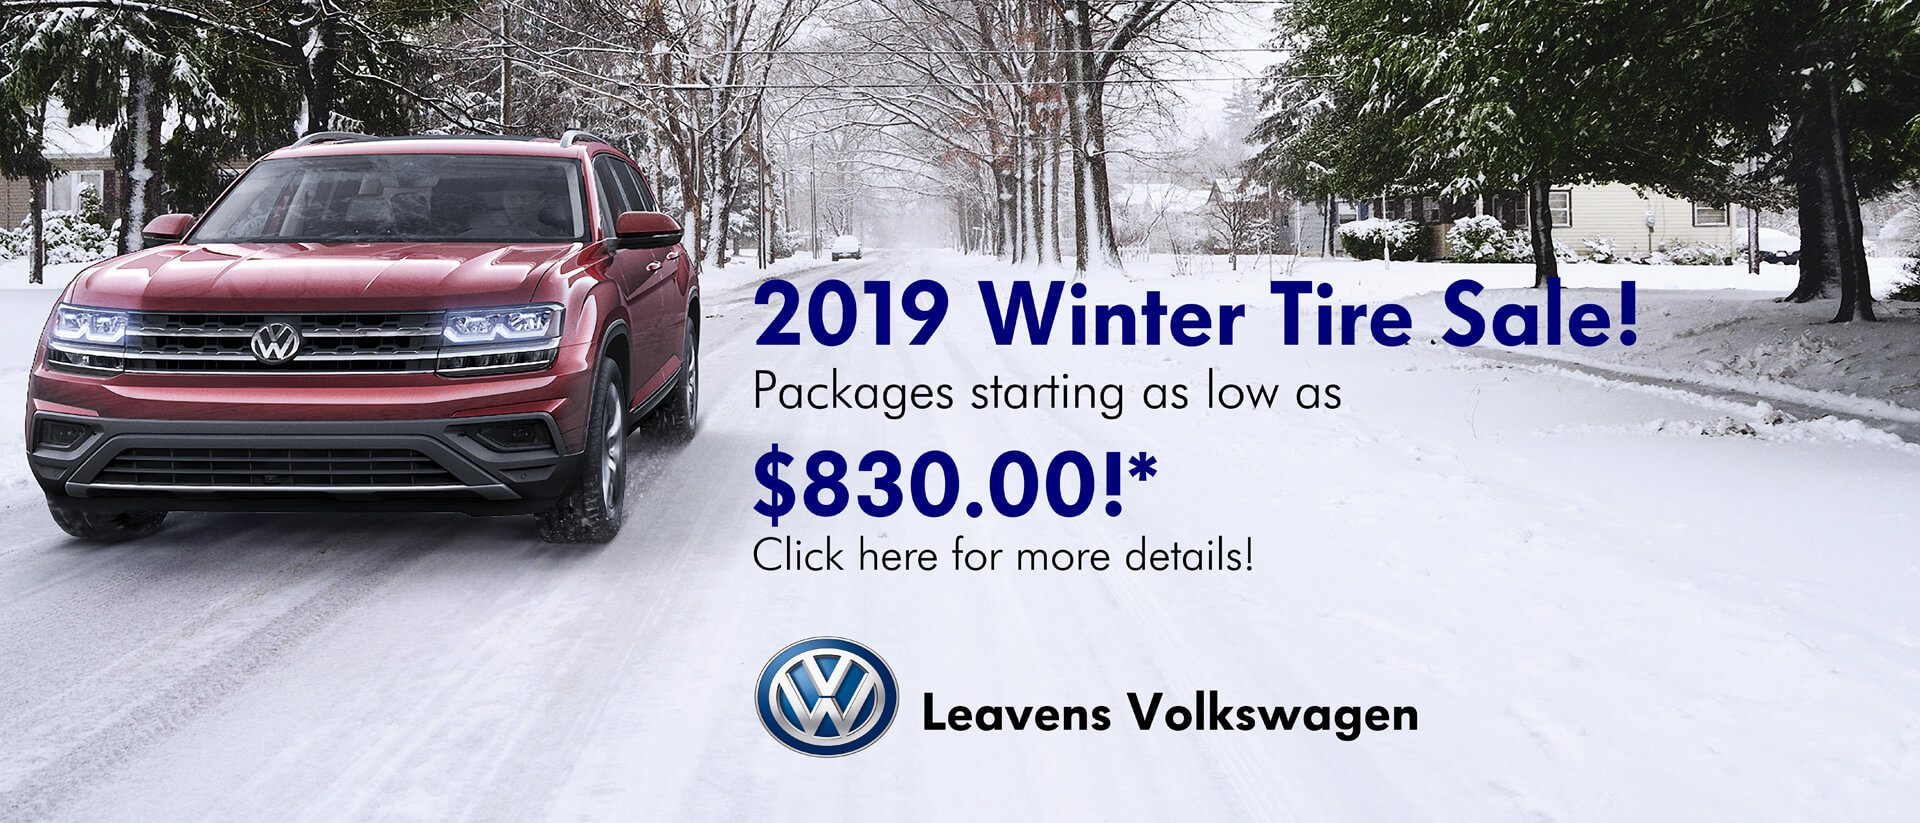 2019 Winter Tire Sale